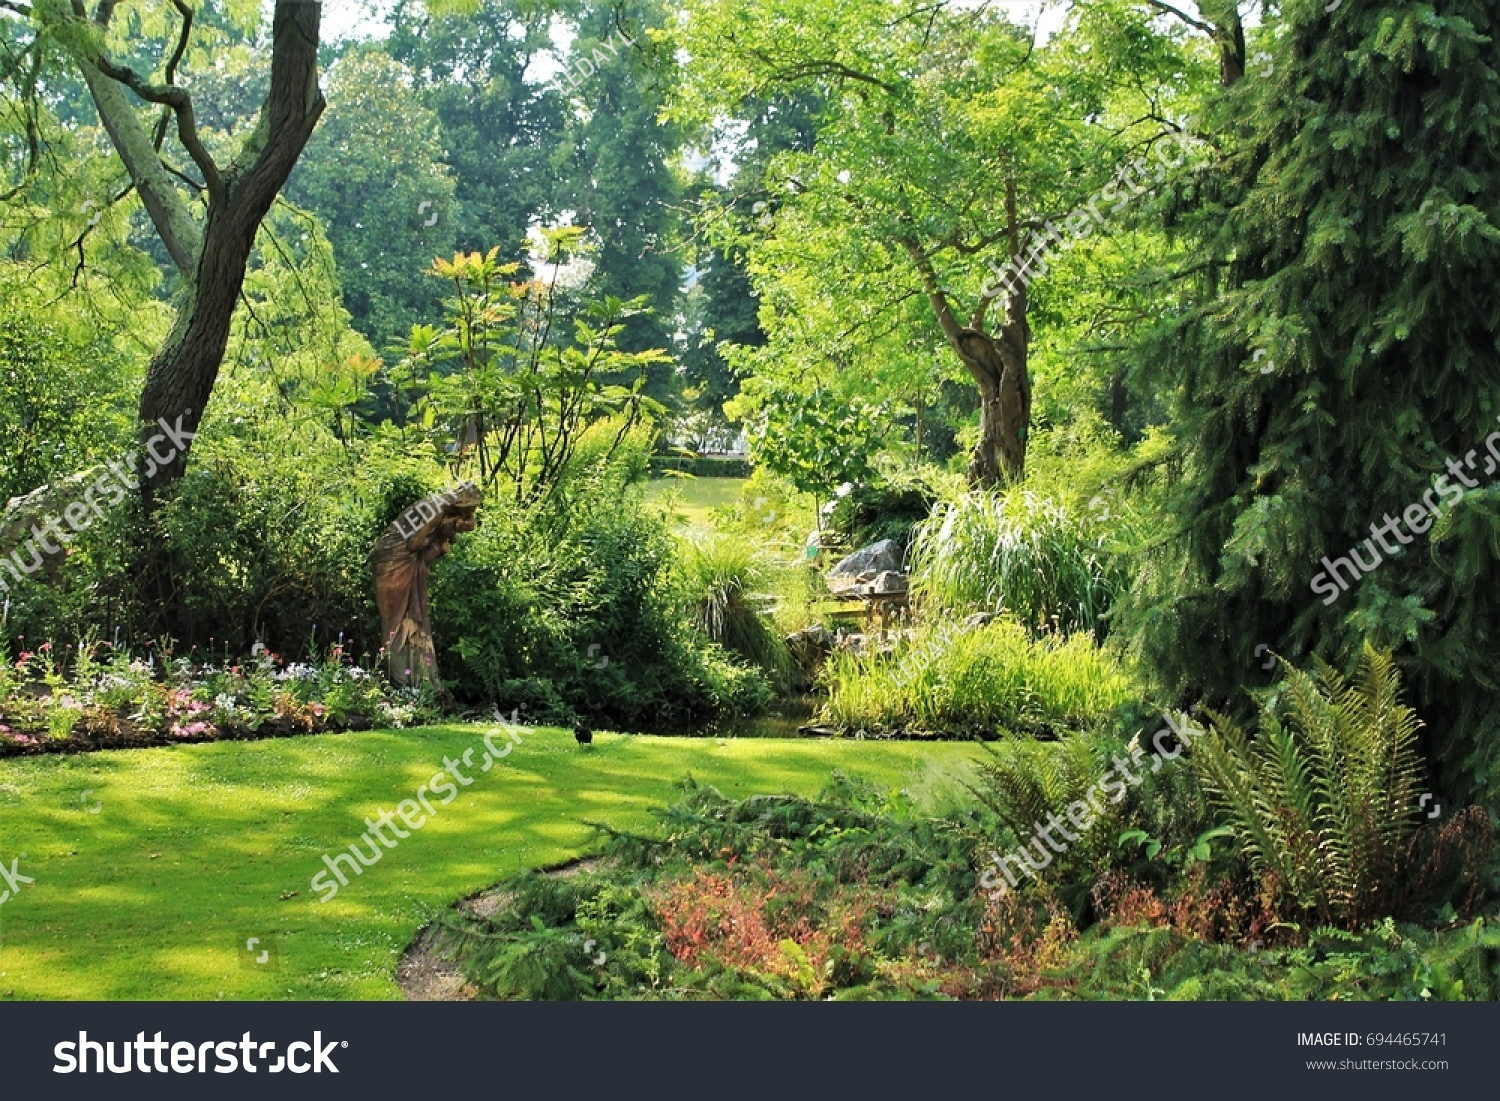 stock photo jardin des plantes botanical garden of nantes loire atlantique pays de la loire region france